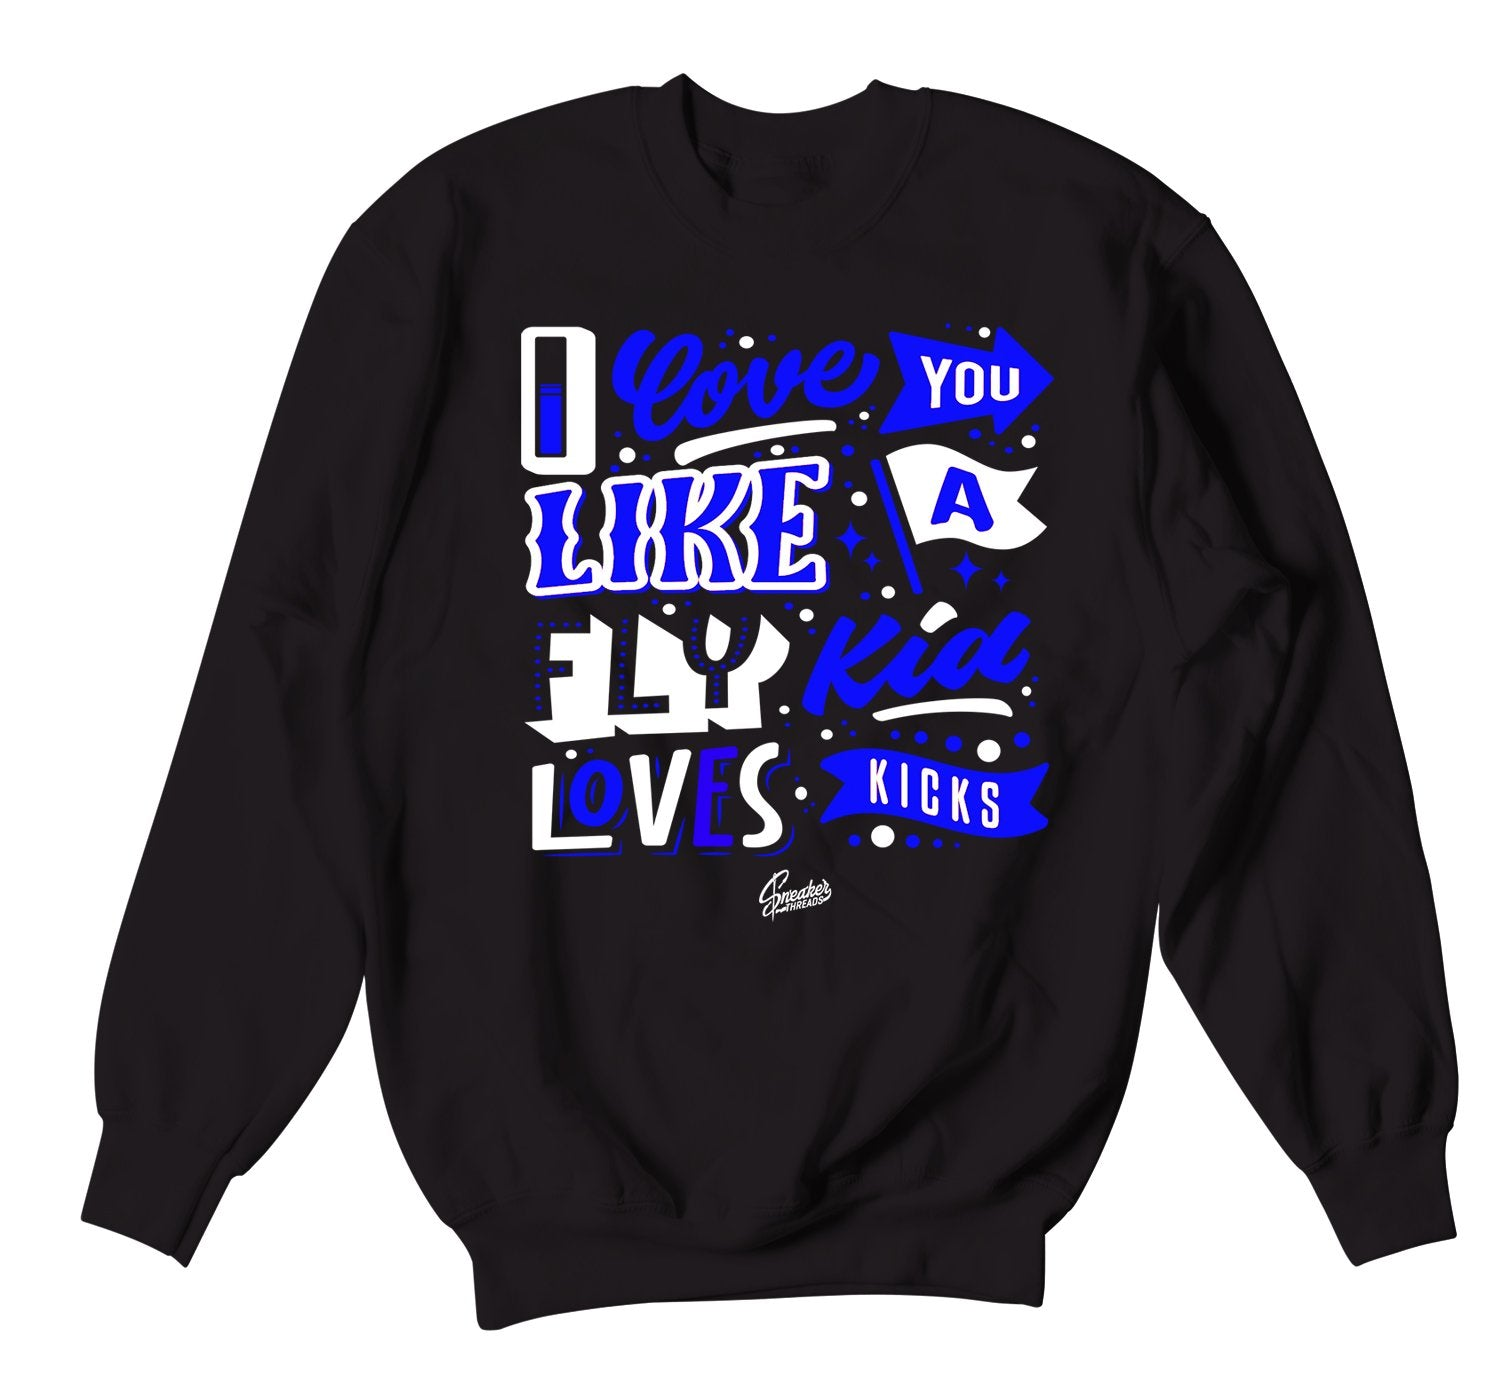 sweatshirt collection designed to match the Jordan 9 racer blue shirts